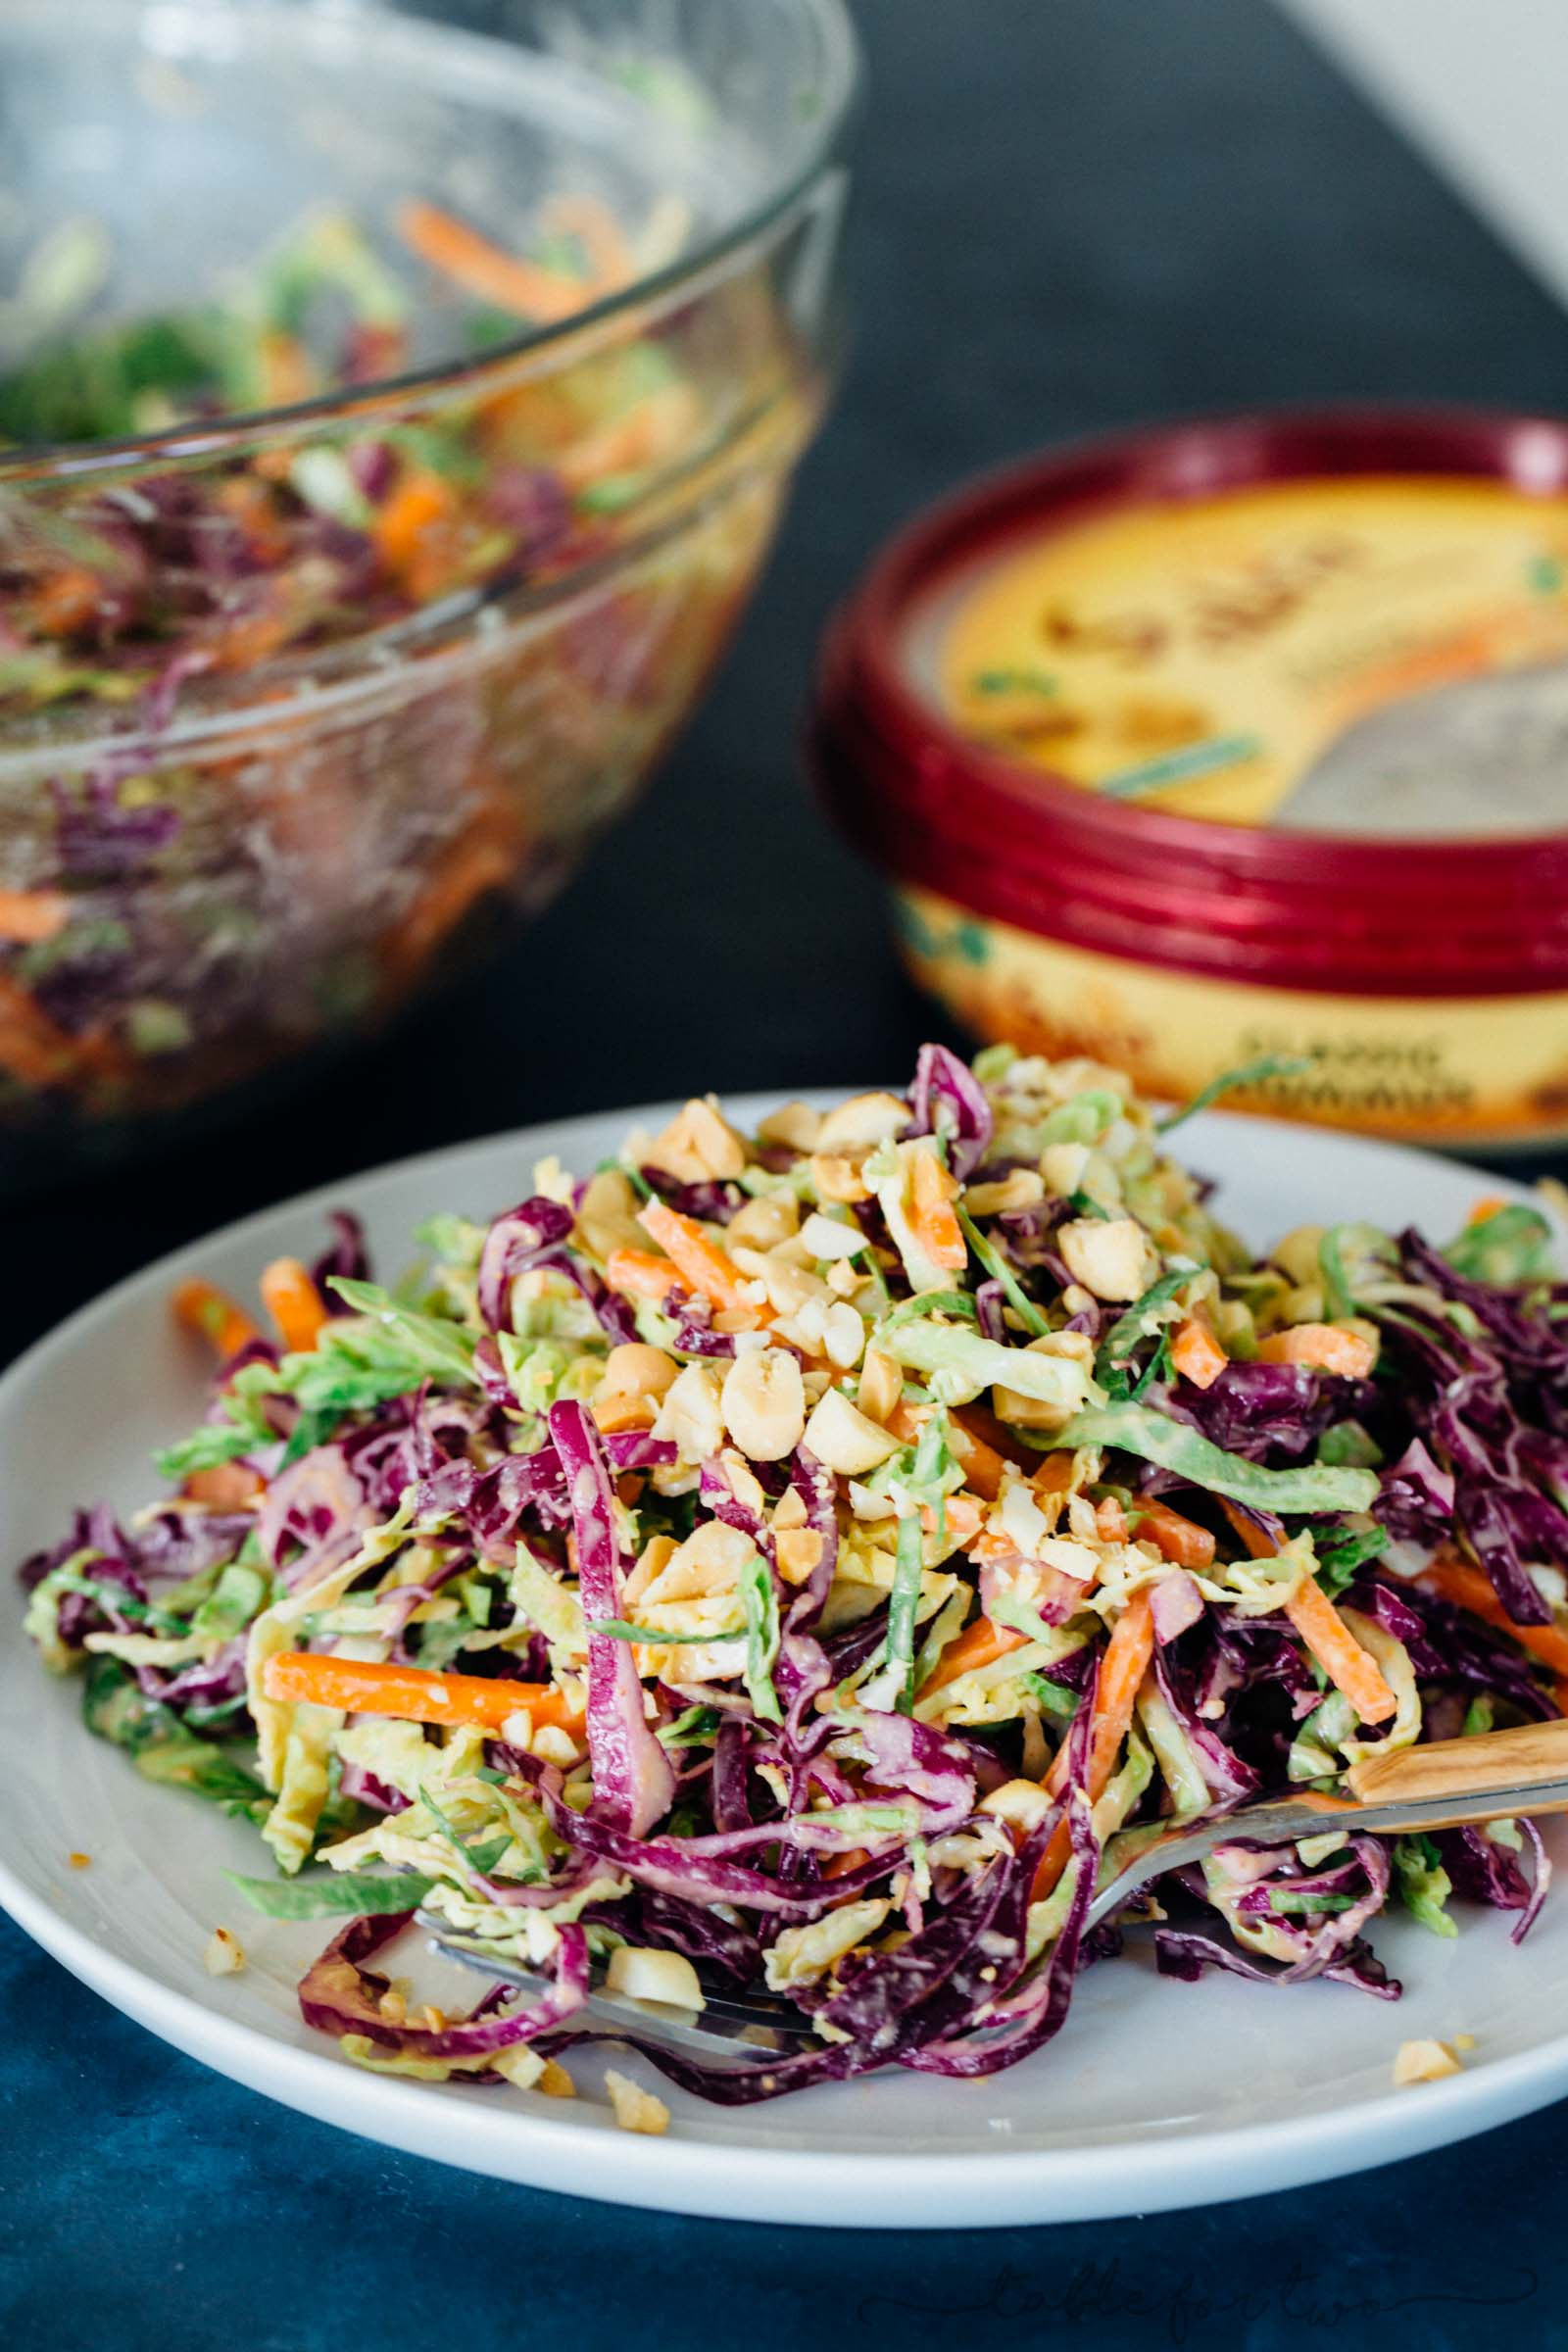 This cabbage slaw is a crisp and refreshing side dish for your next gathering! The creamy hummus dressing made with @sabradips classic hummus is going to be one of your new favorites to drizzle on everything! #ad